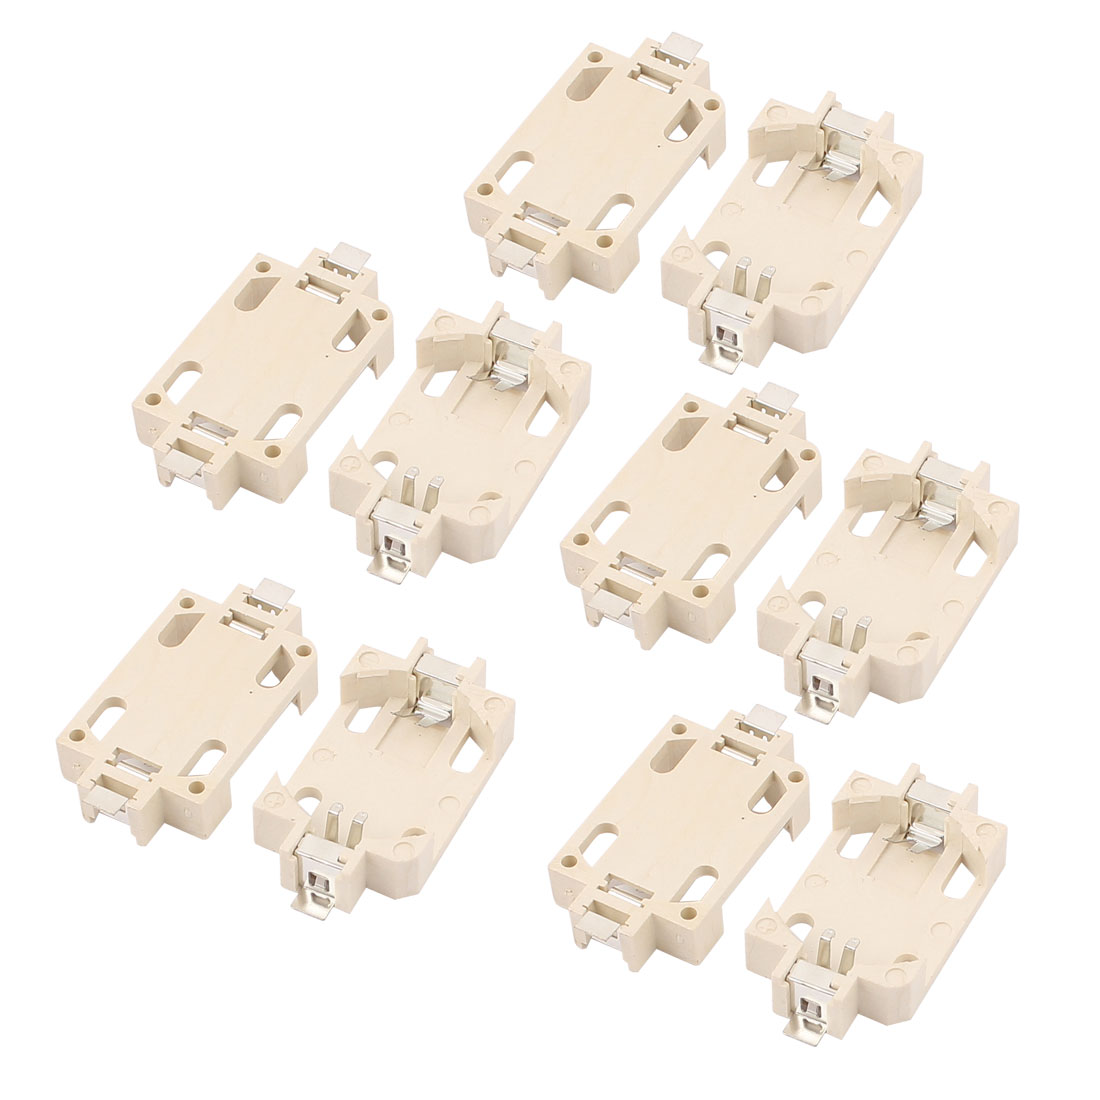 10Pcs PCB Surface Mouting Terminals CR2032 Button Cell Battery Holder